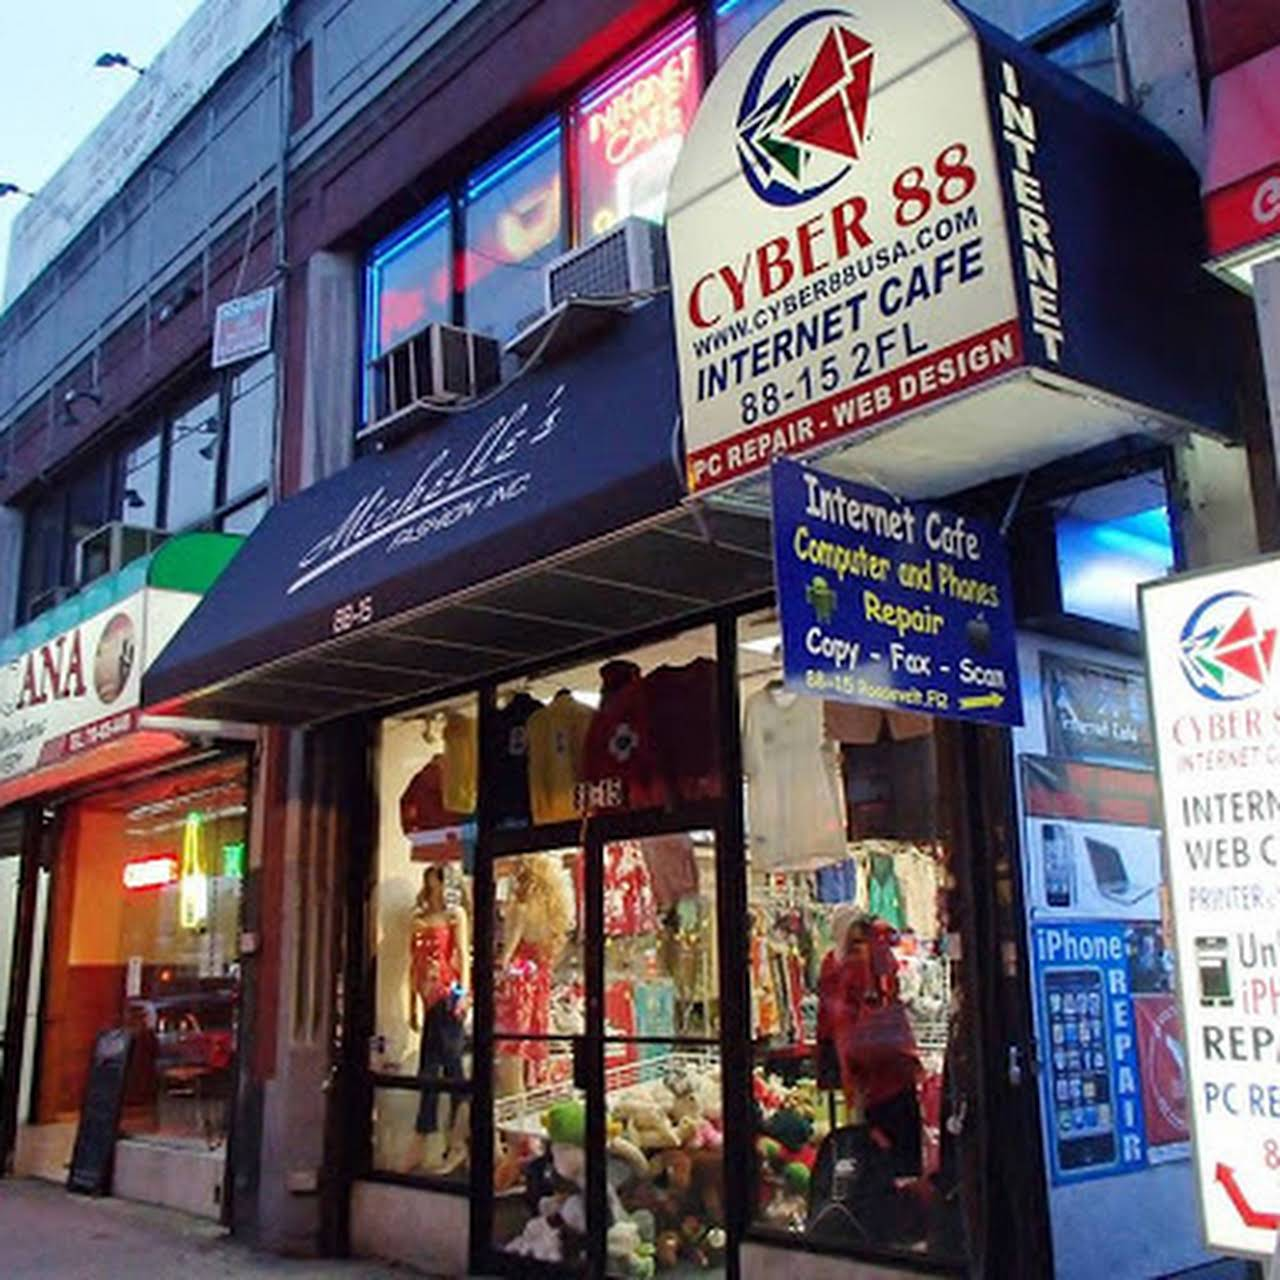 Internet Cafe Cyber 88 - Internet Cafe in Jackson Heights